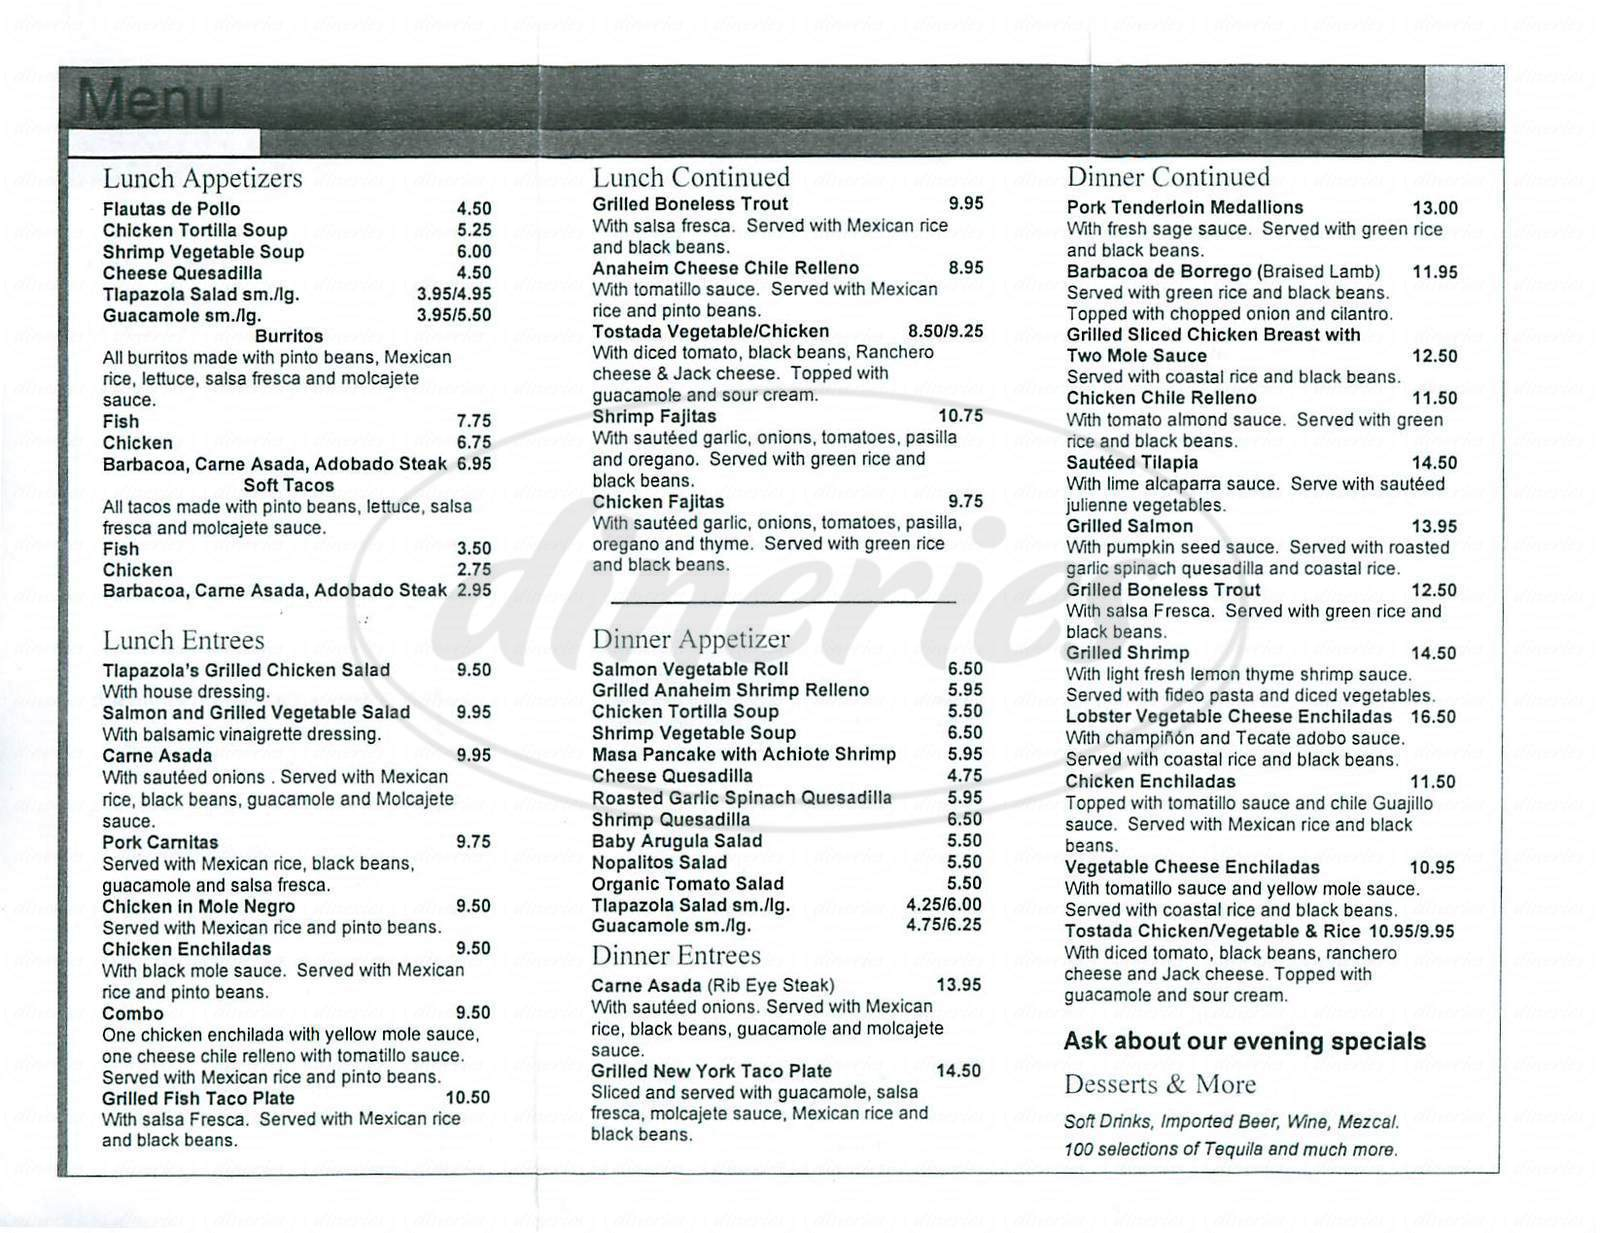 menu for Tlapazola Grill